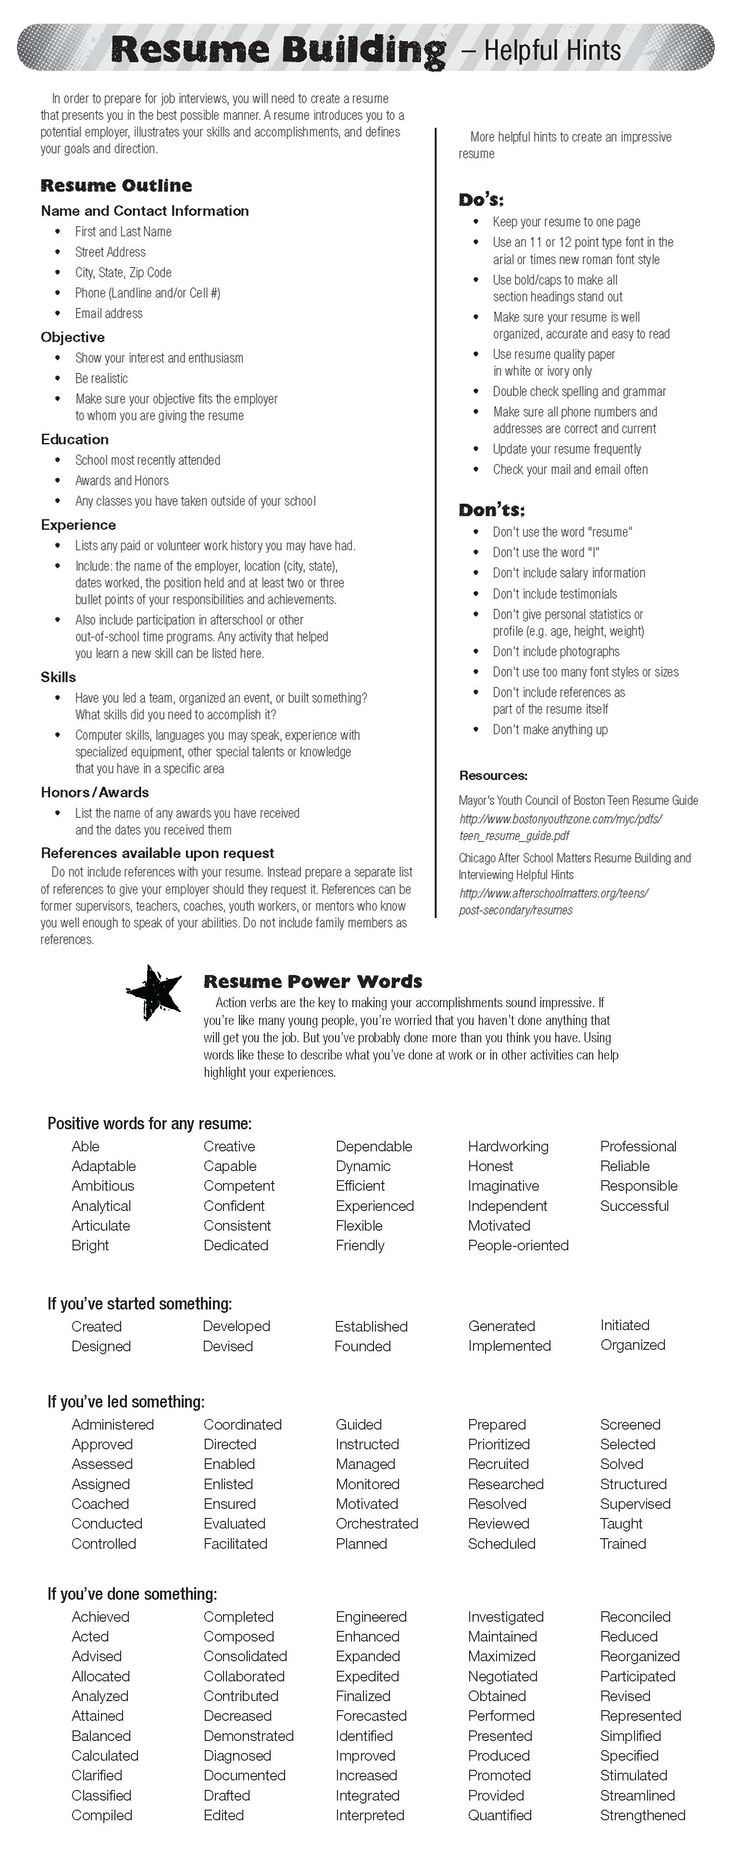 Opposenewapstandardsus  Fascinating  Ideas About Resume On Pinterest  Cv Format Resume Cv And  With Fascinating  Ideas About Resume On Pinterest  Cv Format Resume Cv And Resume Templates With Breathtaking Example Of A Functional Resume Also Software Resume In Addition Computer Skills To Put On A Resume And Medical Surgical Nurse Resume As Well As Resume Two Pages Additionally Dental Assistant Resume Sample From Pinterestcom With Opposenewapstandardsus  Fascinating  Ideas About Resume On Pinterest  Cv Format Resume Cv And  With Breathtaking  Ideas About Resume On Pinterest  Cv Format Resume Cv And Resume Templates And Fascinating Example Of A Functional Resume Also Software Resume In Addition Computer Skills To Put On A Resume From Pinterestcom